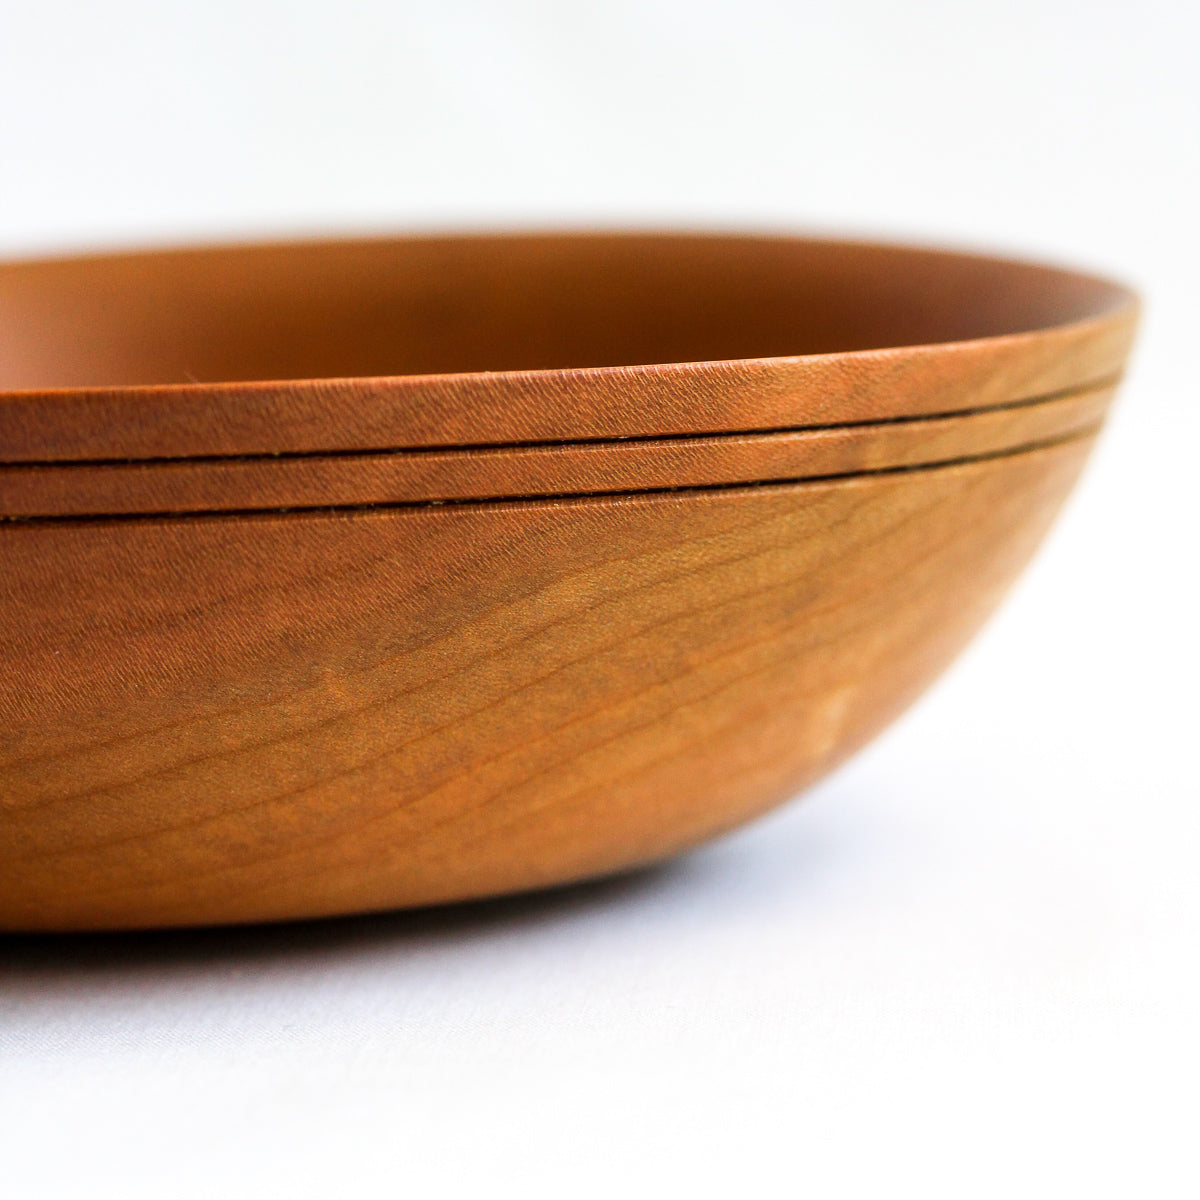 Small Cherry Bowl with Grooved Rim